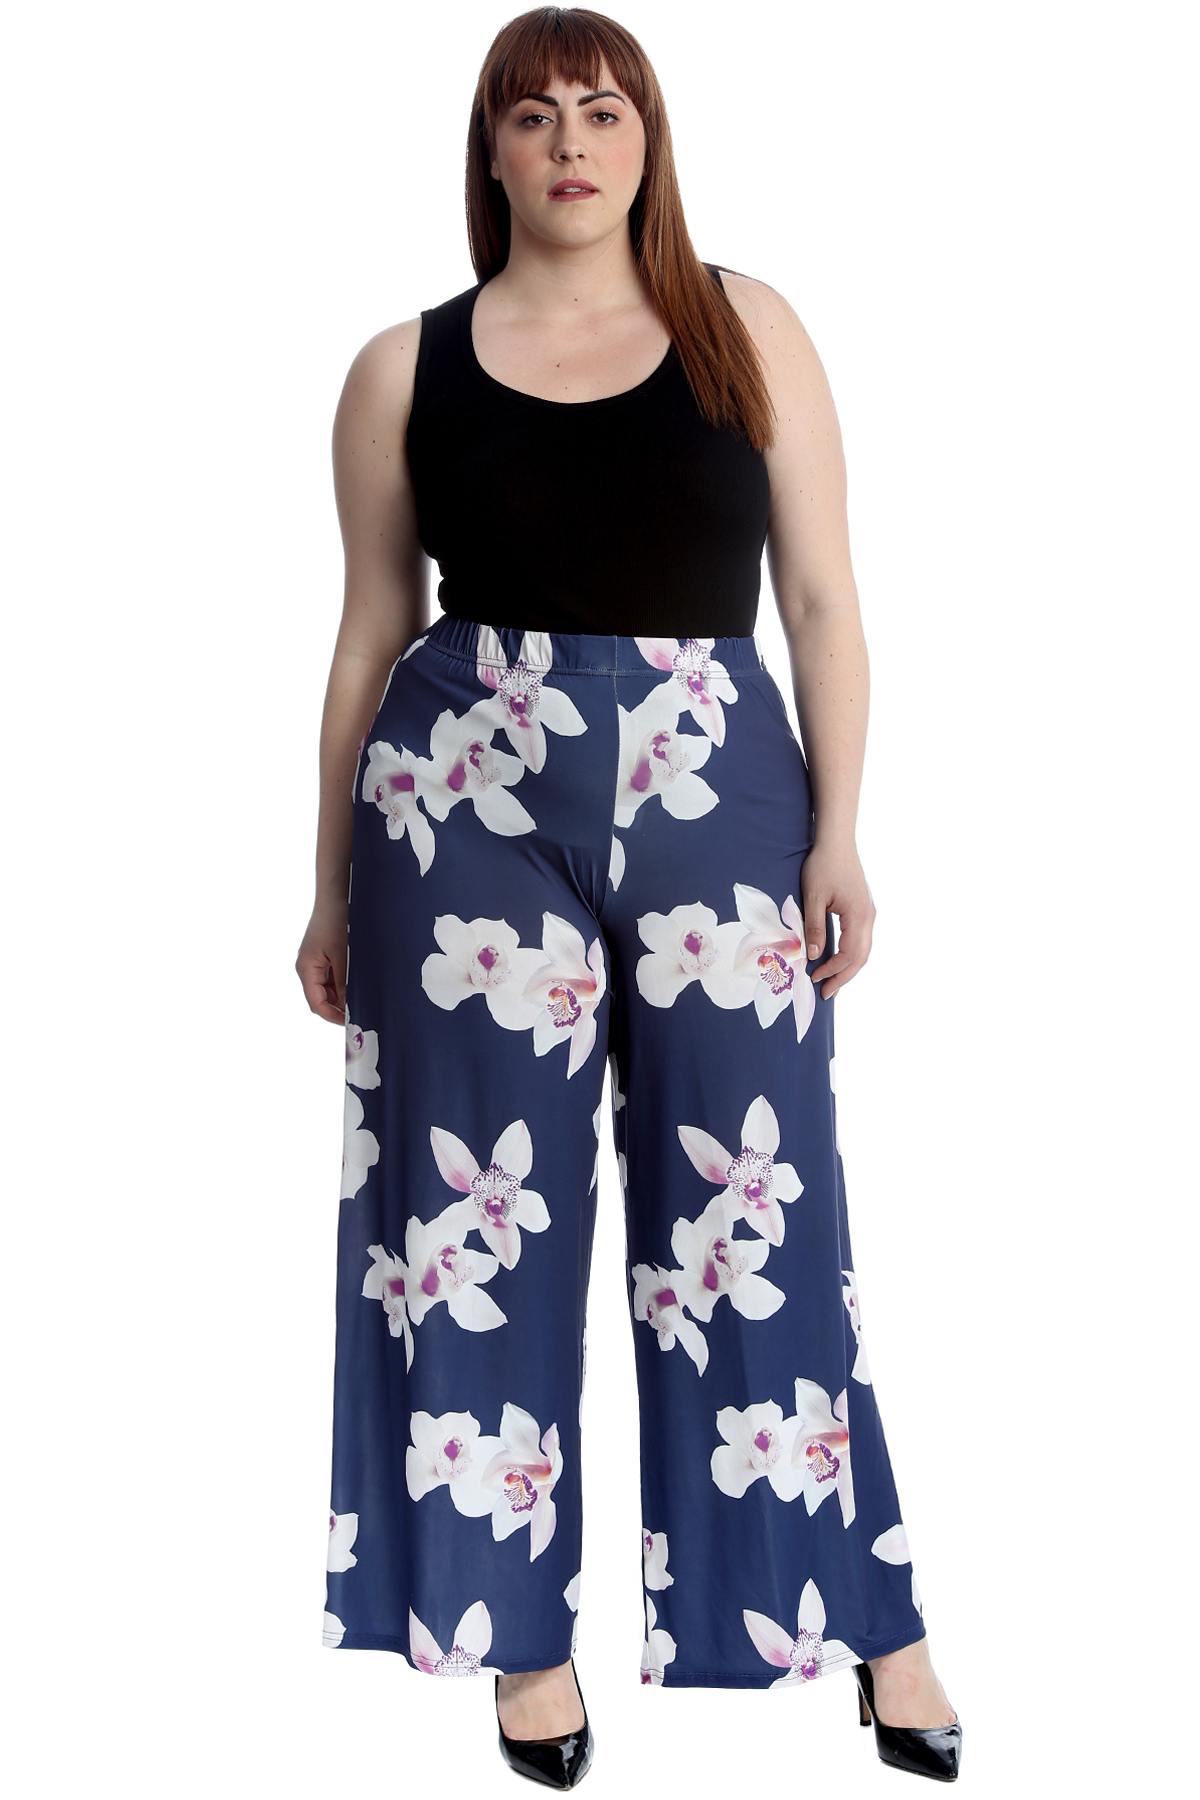 Details about New Ladies Plus Size Palazzo Trousers Women Pants Wide Leg  Floral Print Flared